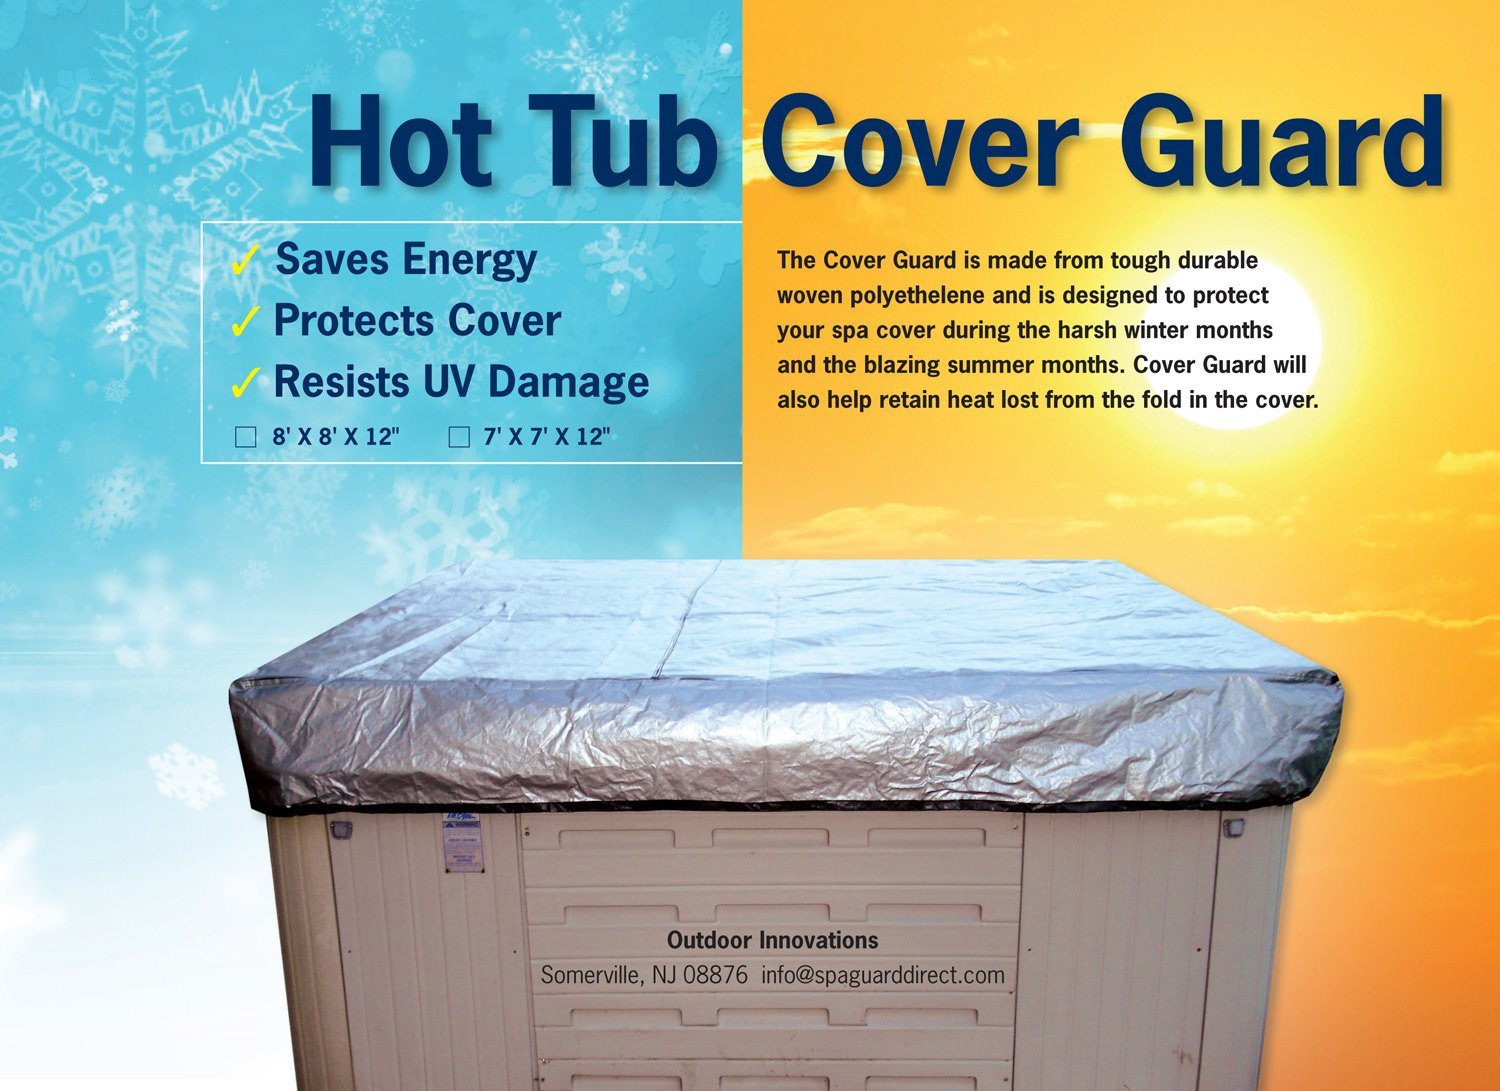 Amazon.com : Hot Tub Cover Cap 7x7 : Garden & Outdoor